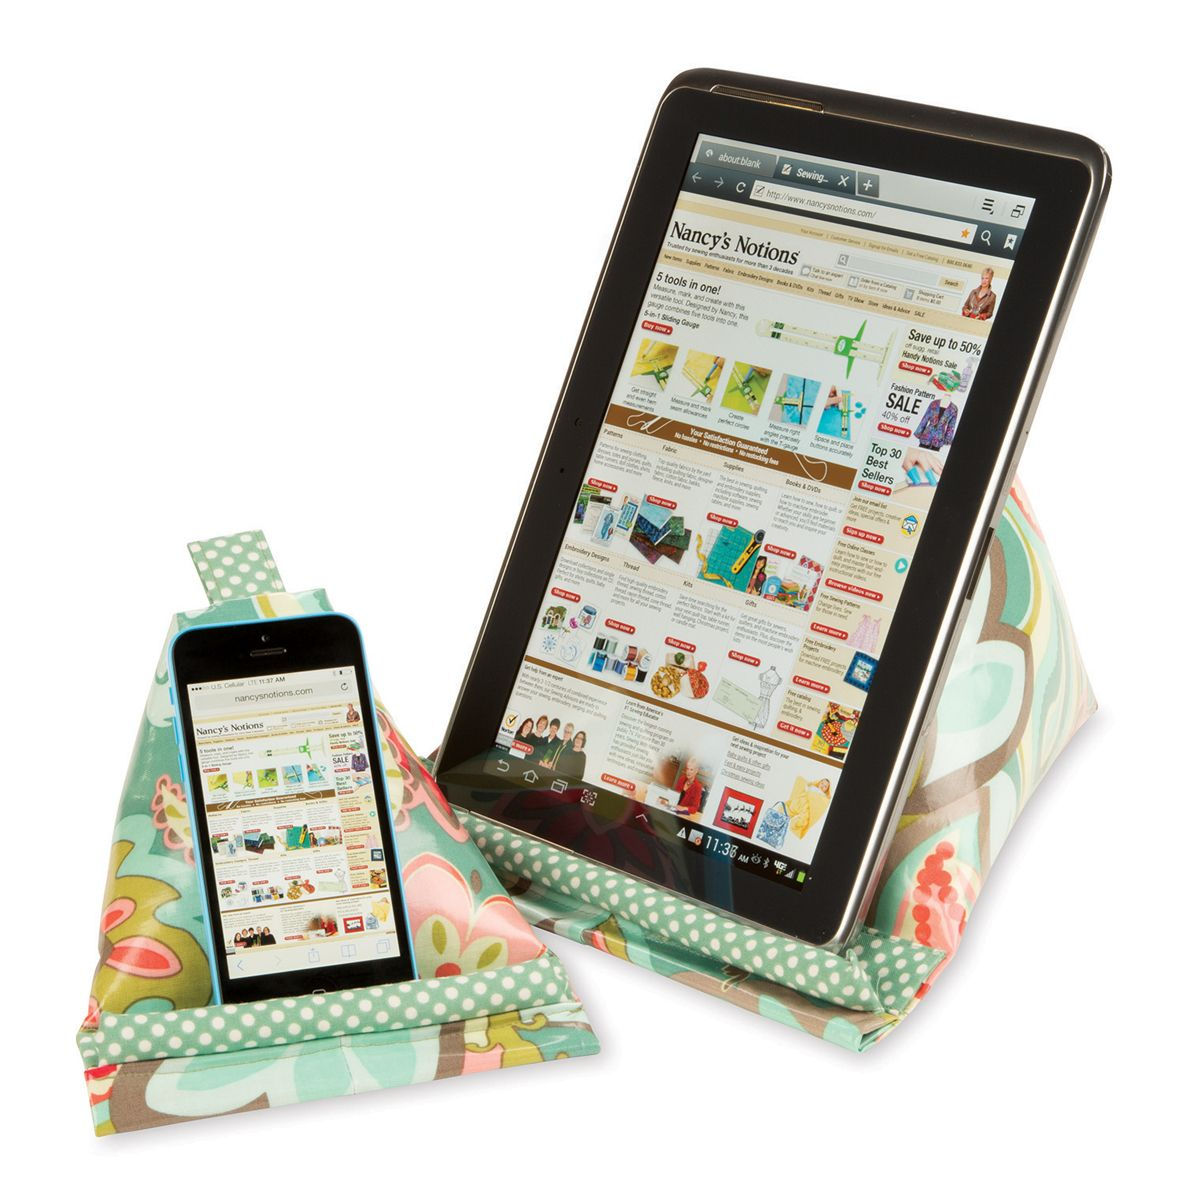 Sew An Easy Ipad Pillow Or Tablet Stand Sewing With